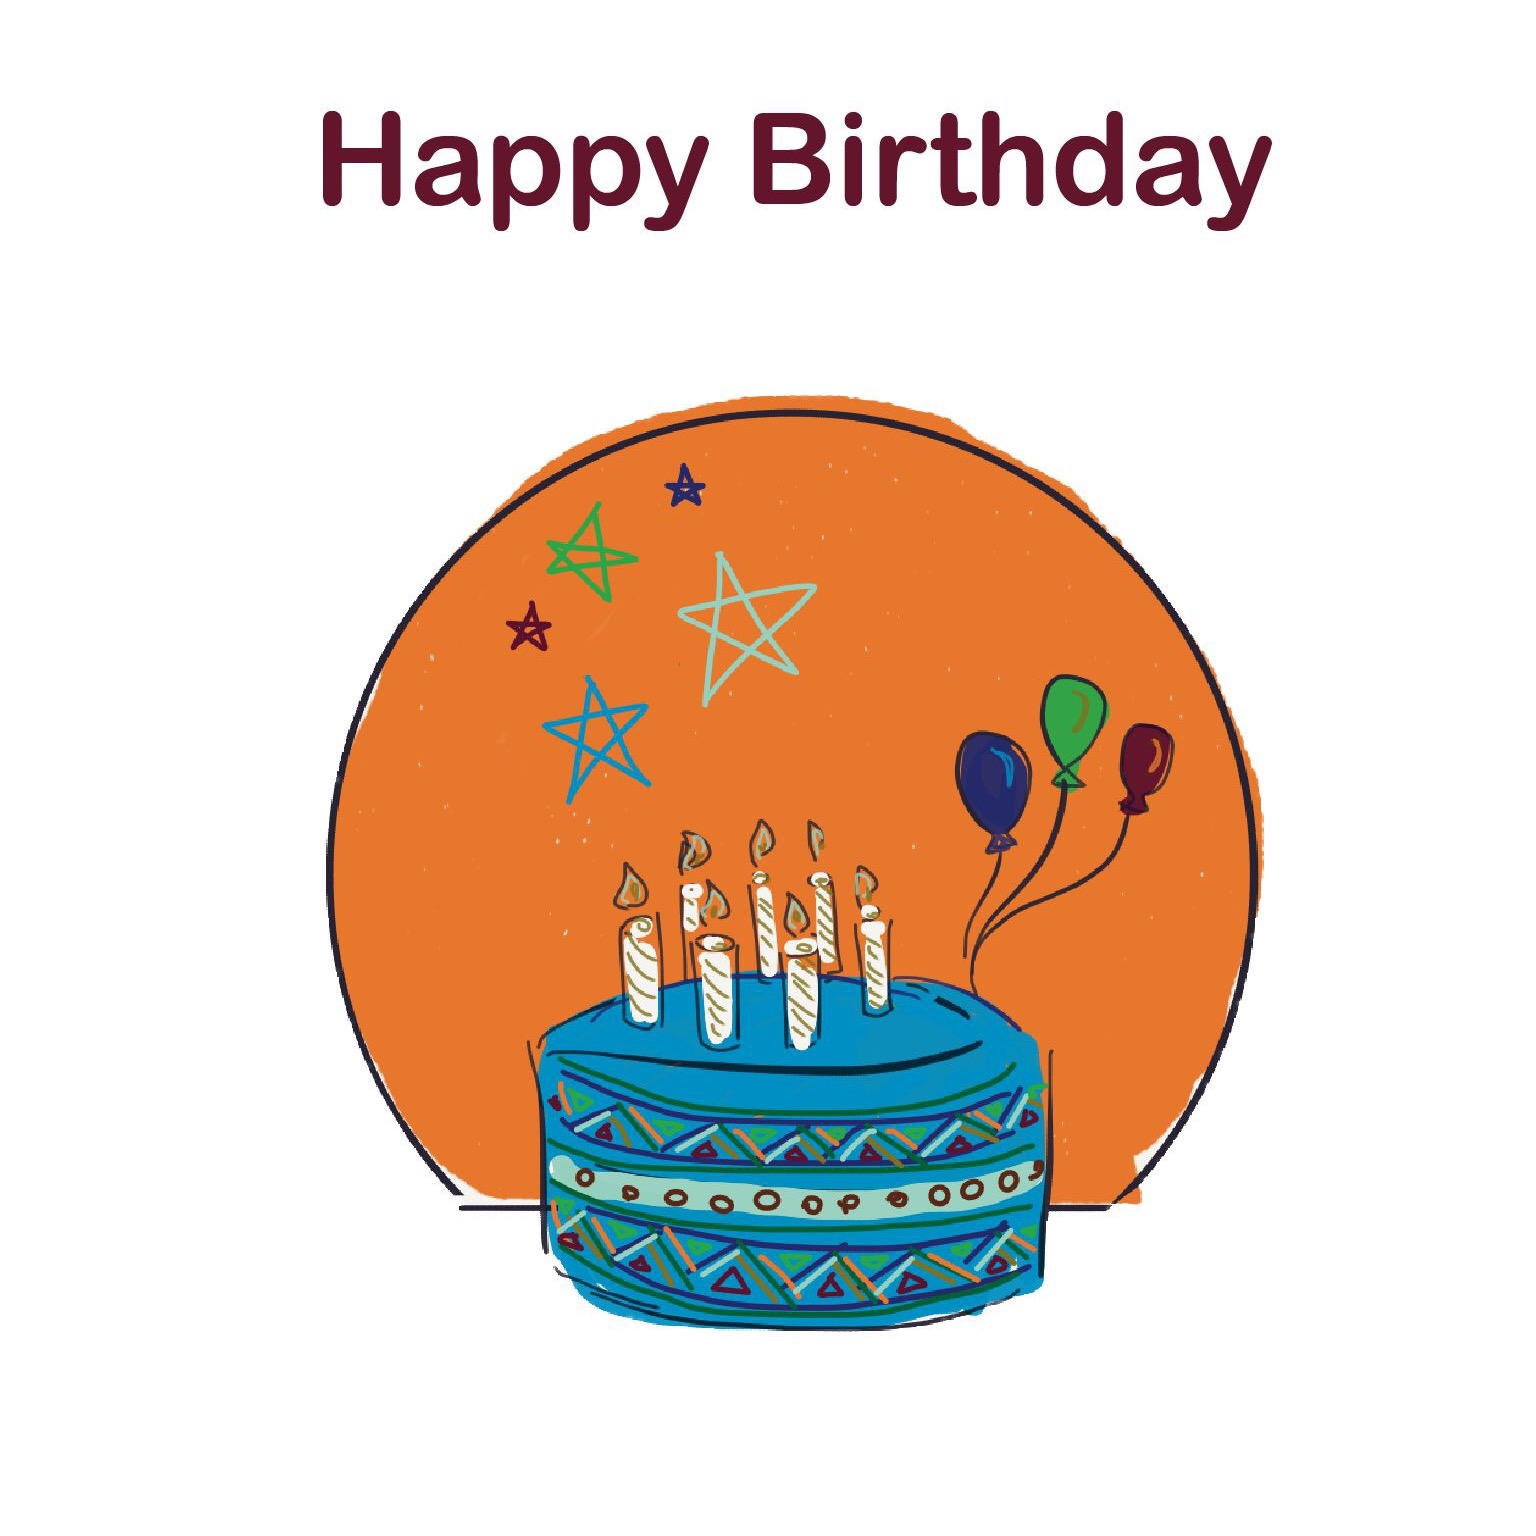 /en/shop/product/Happy_Birthday_Greeting_card.php